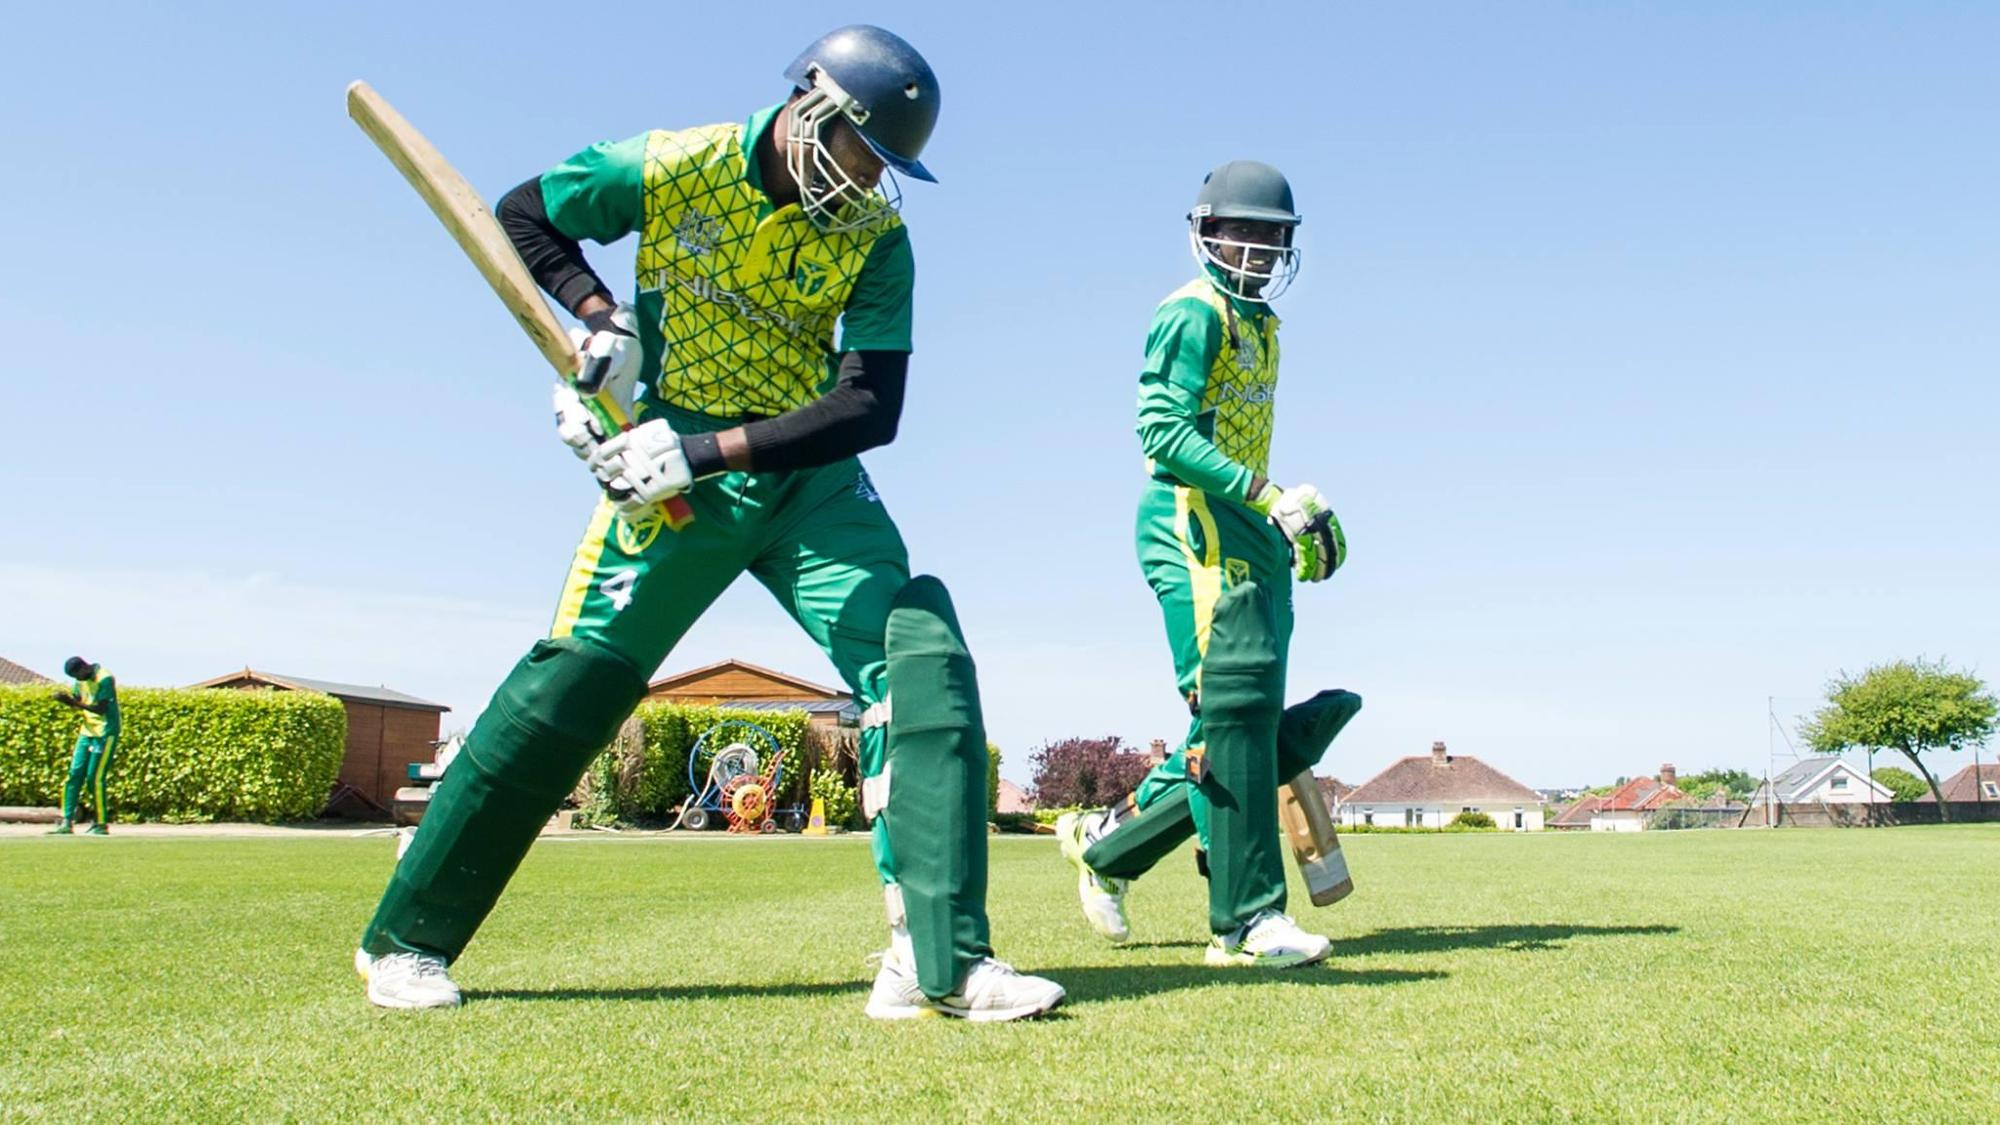 Nigeria qualifies for first U-19 Cricket World Cup